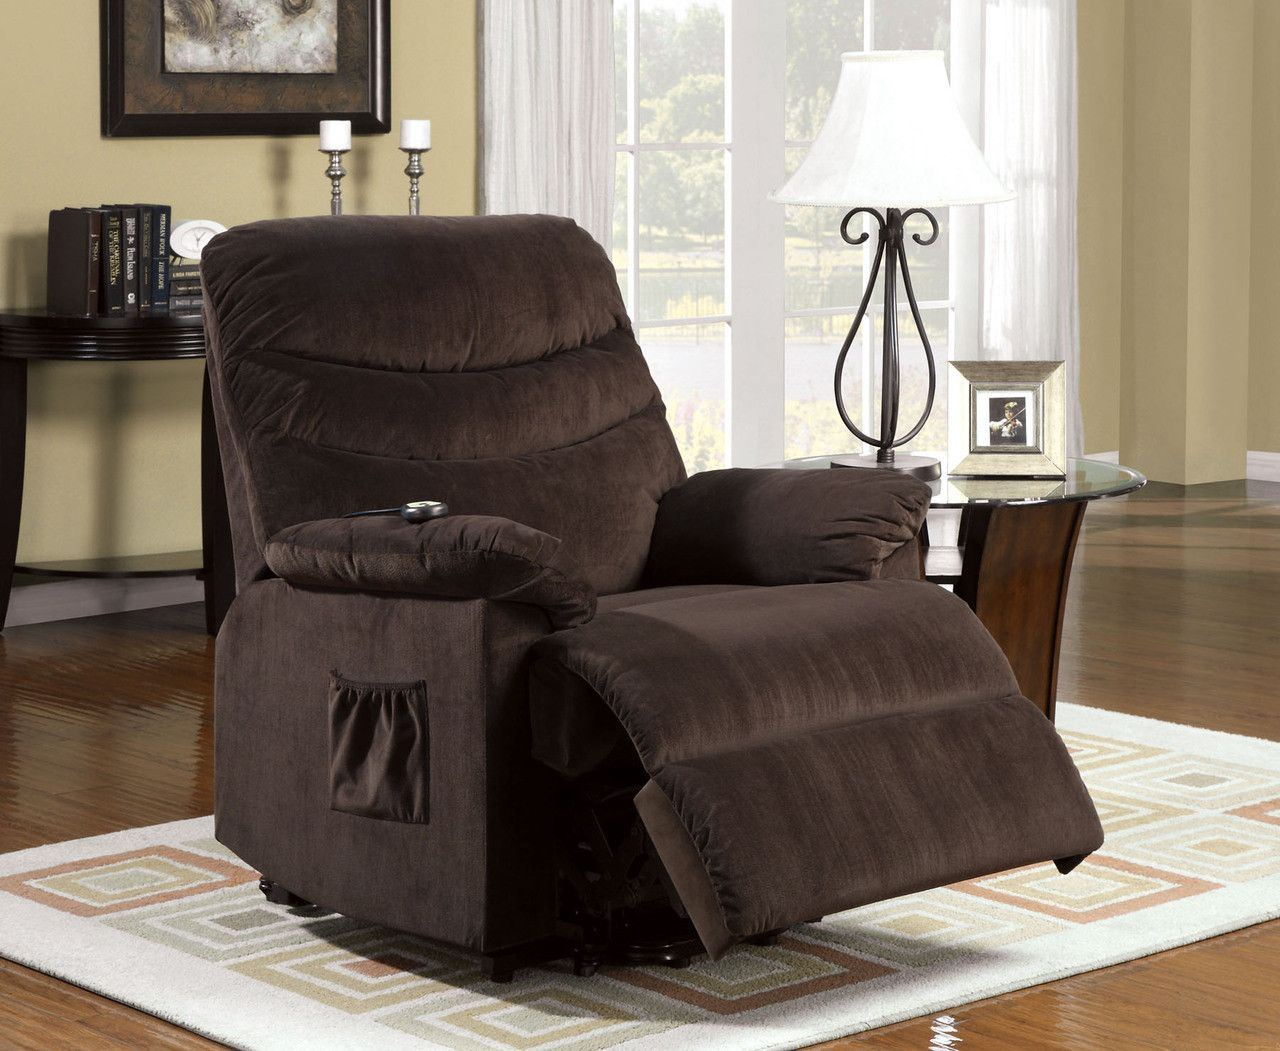 Furniture Of America Perth Recliner With Recliner With Stand Assist Power Lift System CM-RC6933 & Perth Recliner With Recliner With Stand Assist Power Lift System ... islam-shia.org